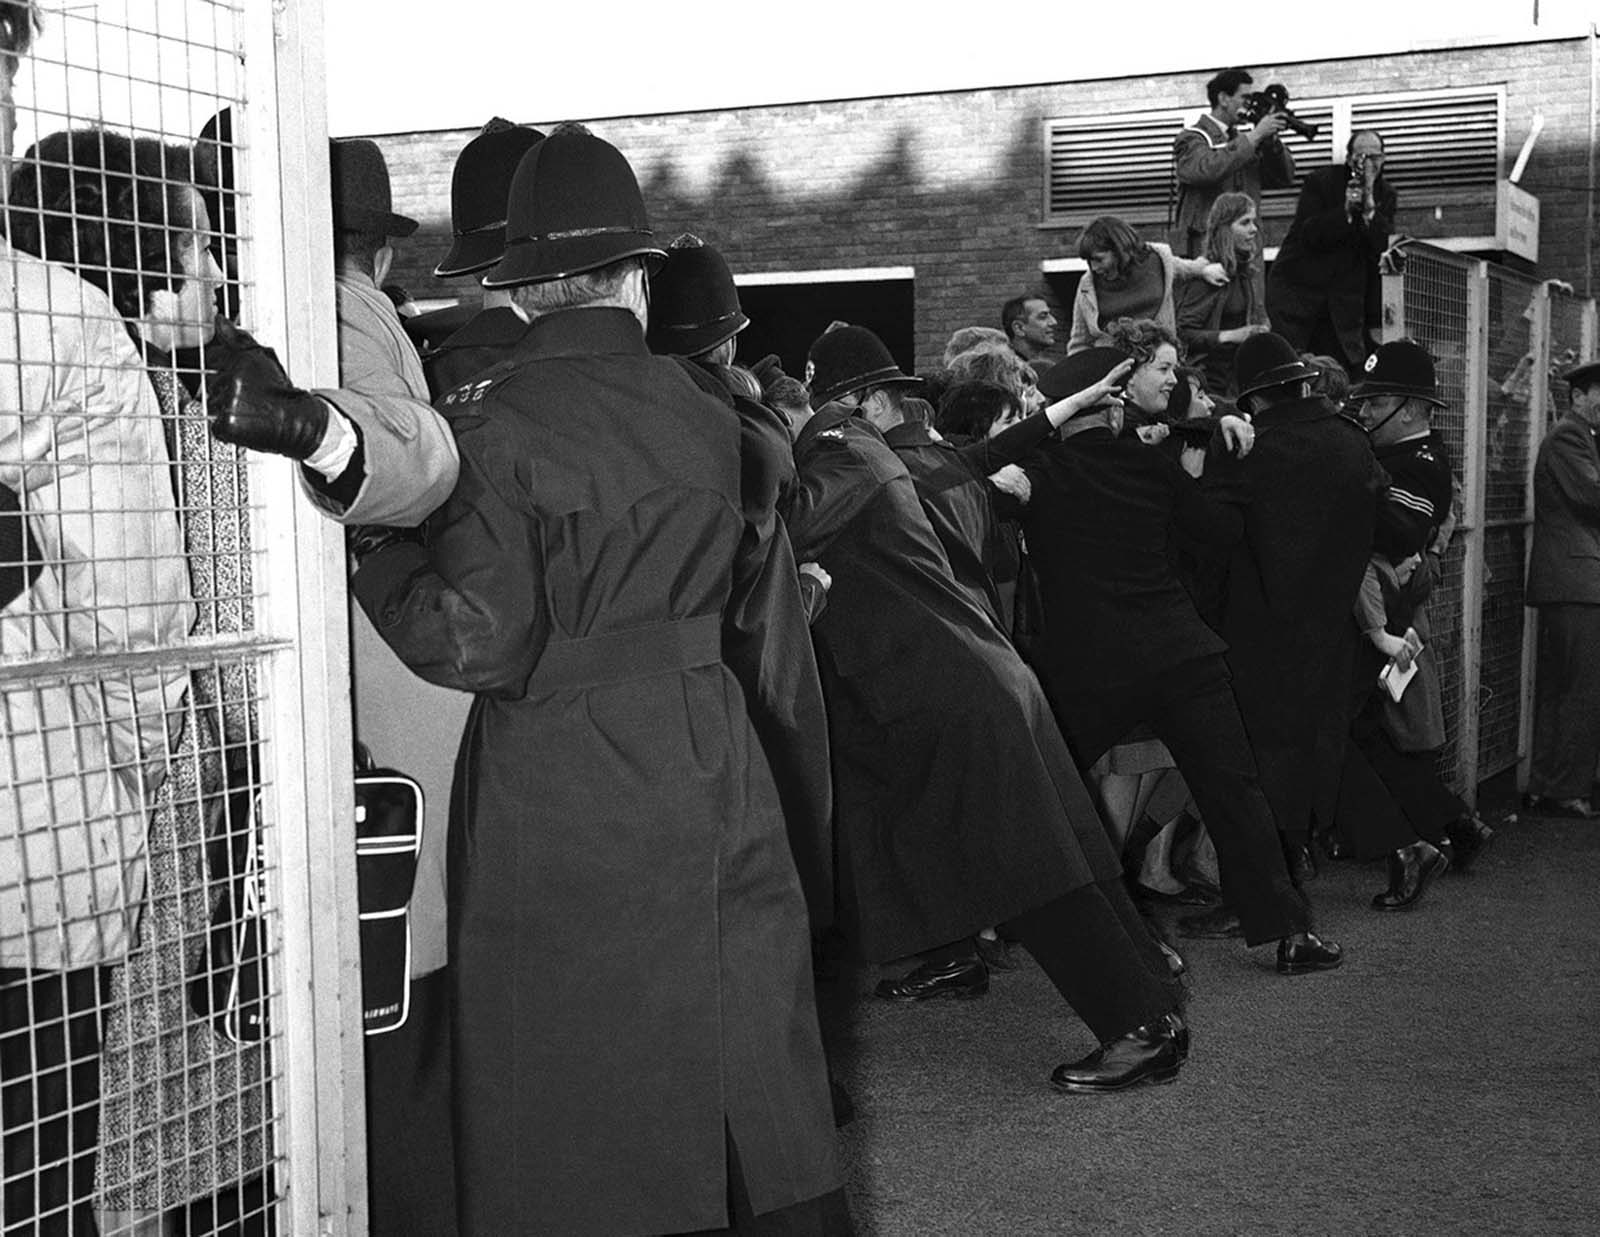 Police hold back screaming fans fighting to get near their idols, the Beatles, when the Liverpool pop group returned to London Airport from Paris, on February 5, 1964. A strong police escort had to accompany the four Beatles from their aircraft to the customs channel.